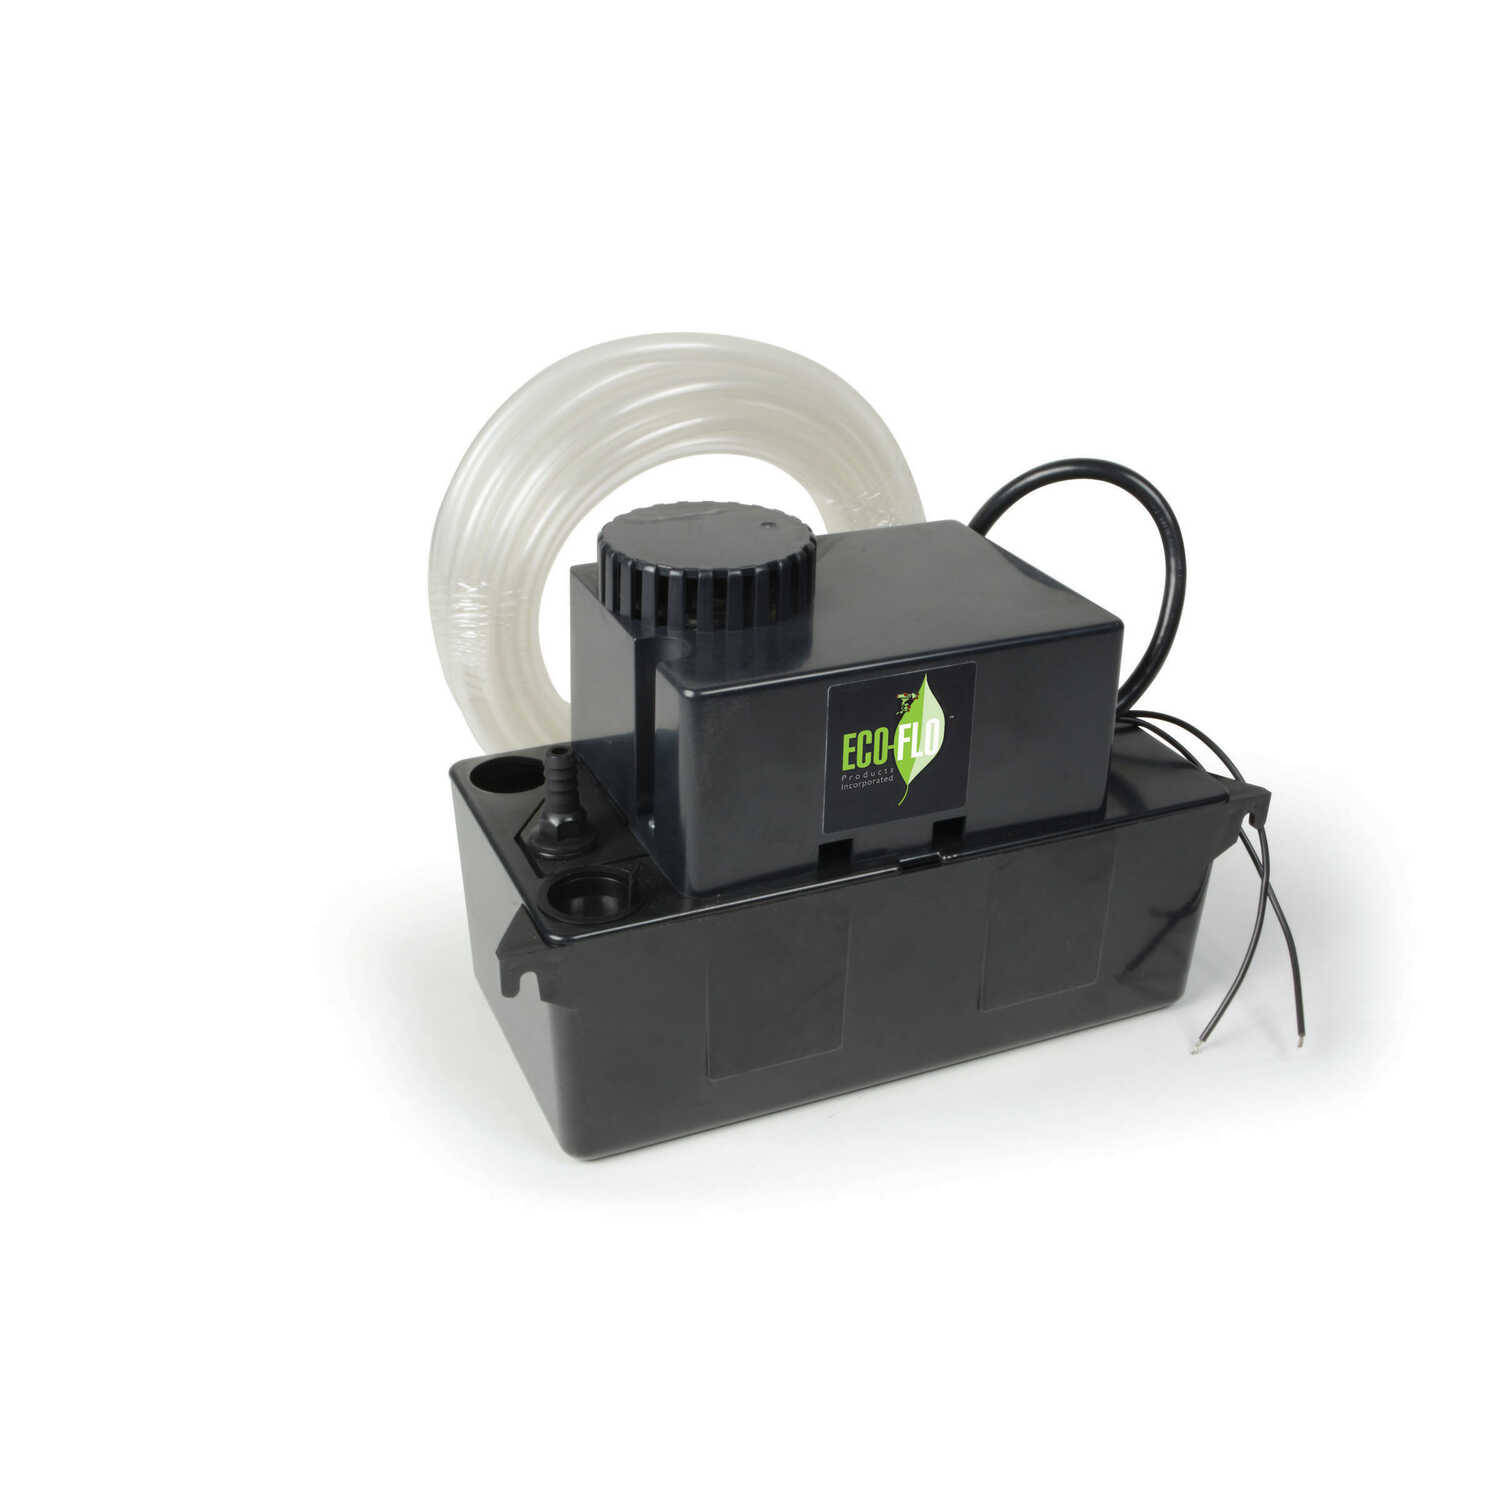 Ecoflo  Thermoplastic  Condensate Removal Pump  100 gph 115 volt